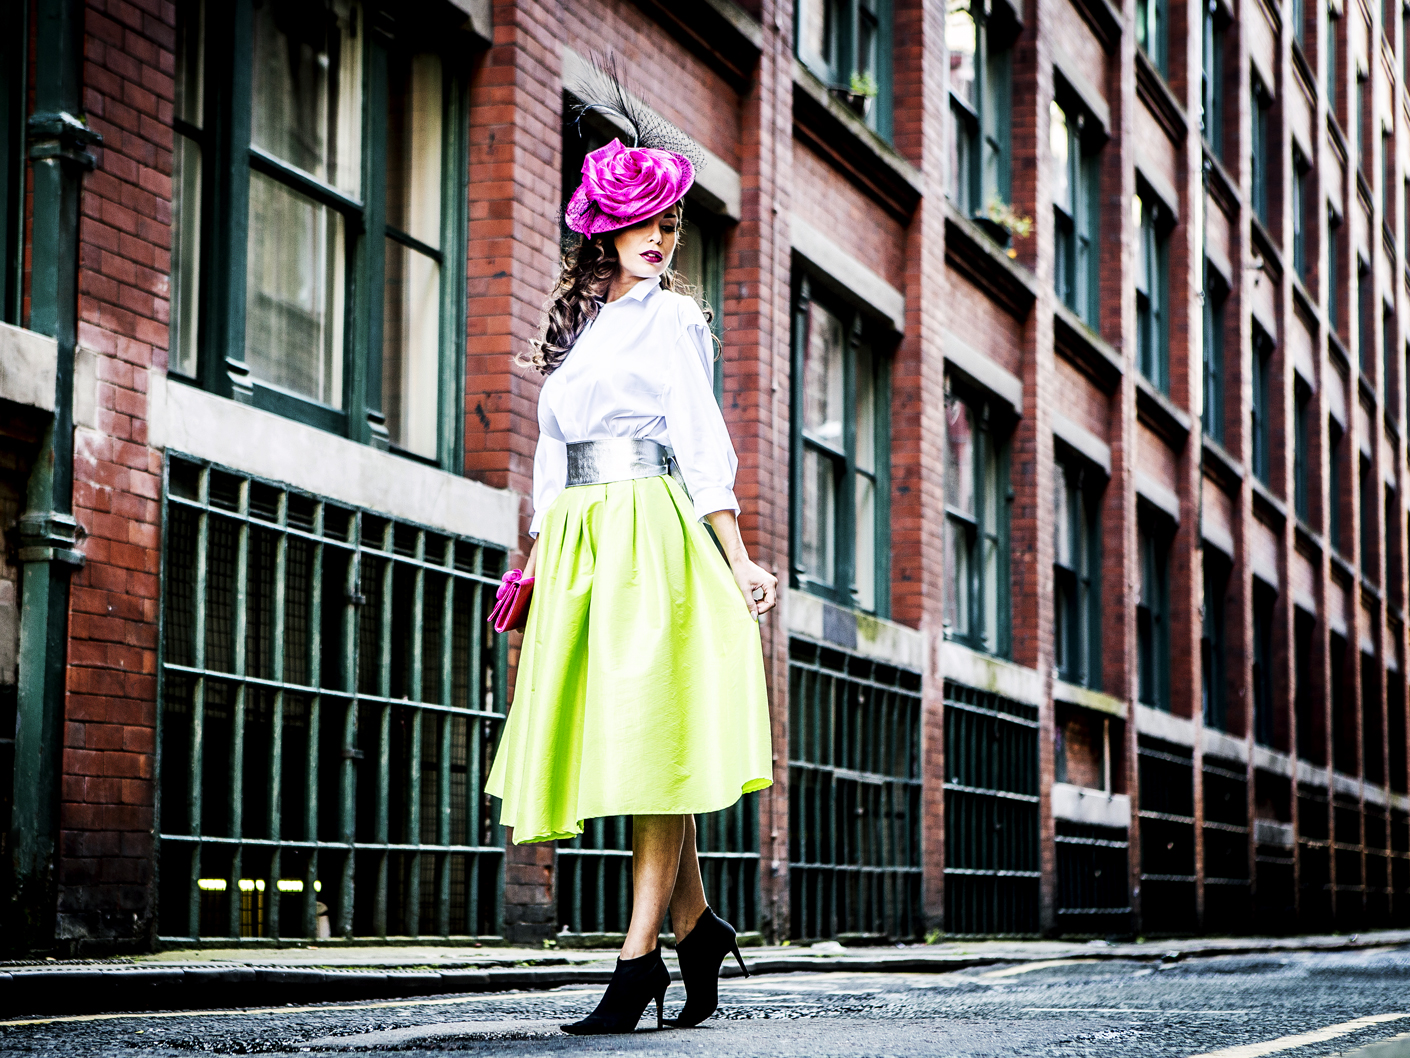 elegance-fashion-photography-shot-in-manchester